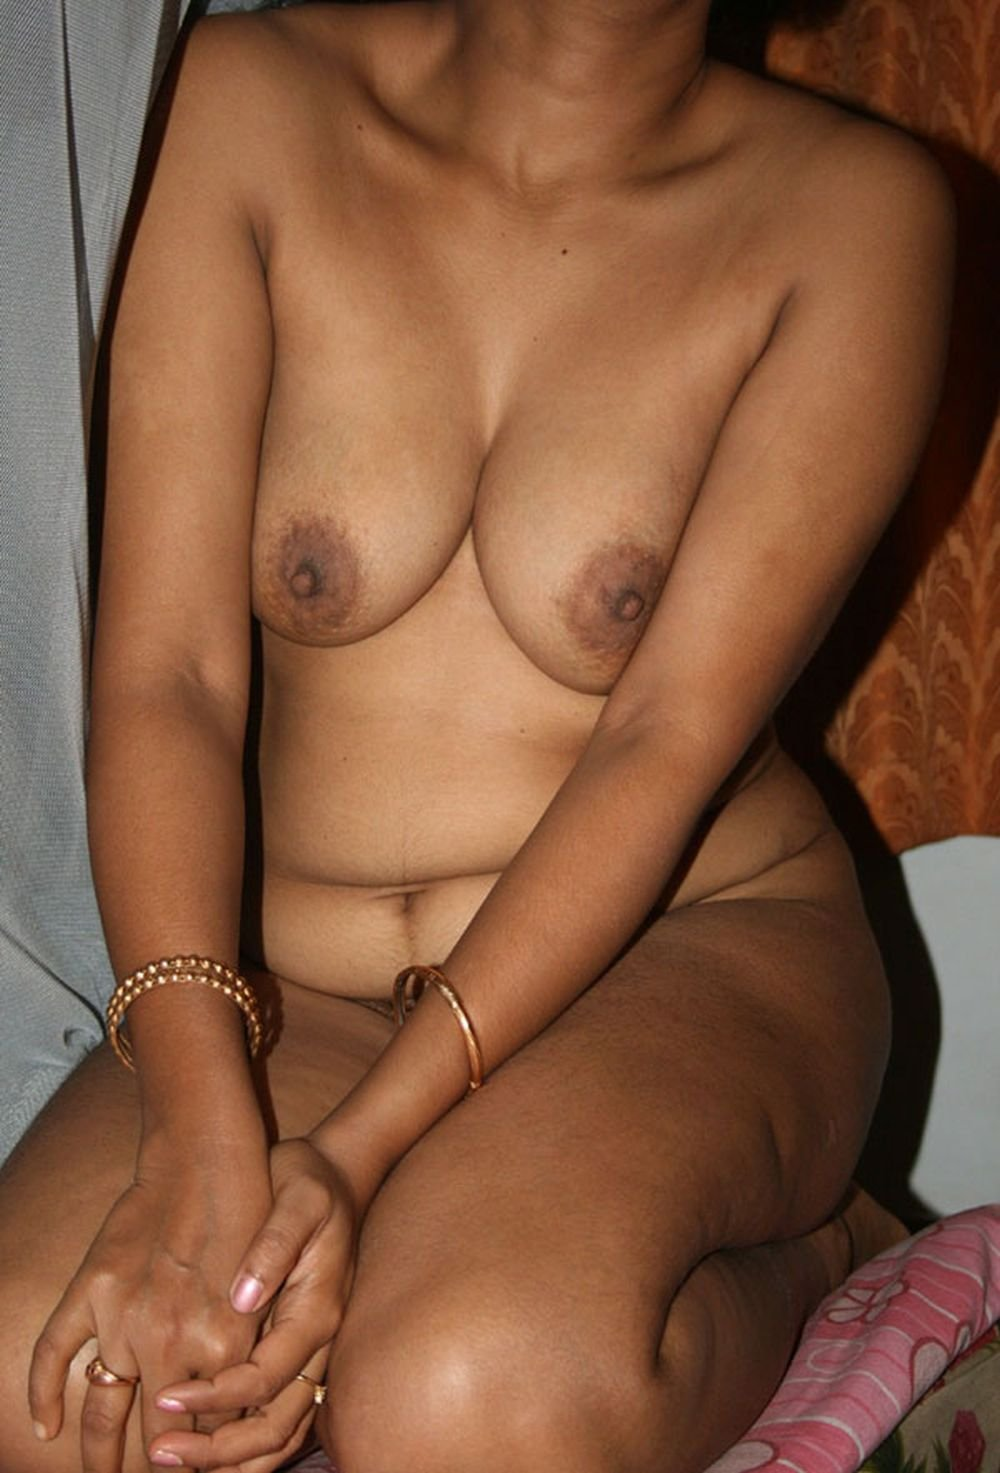 Amateur asian nude photo